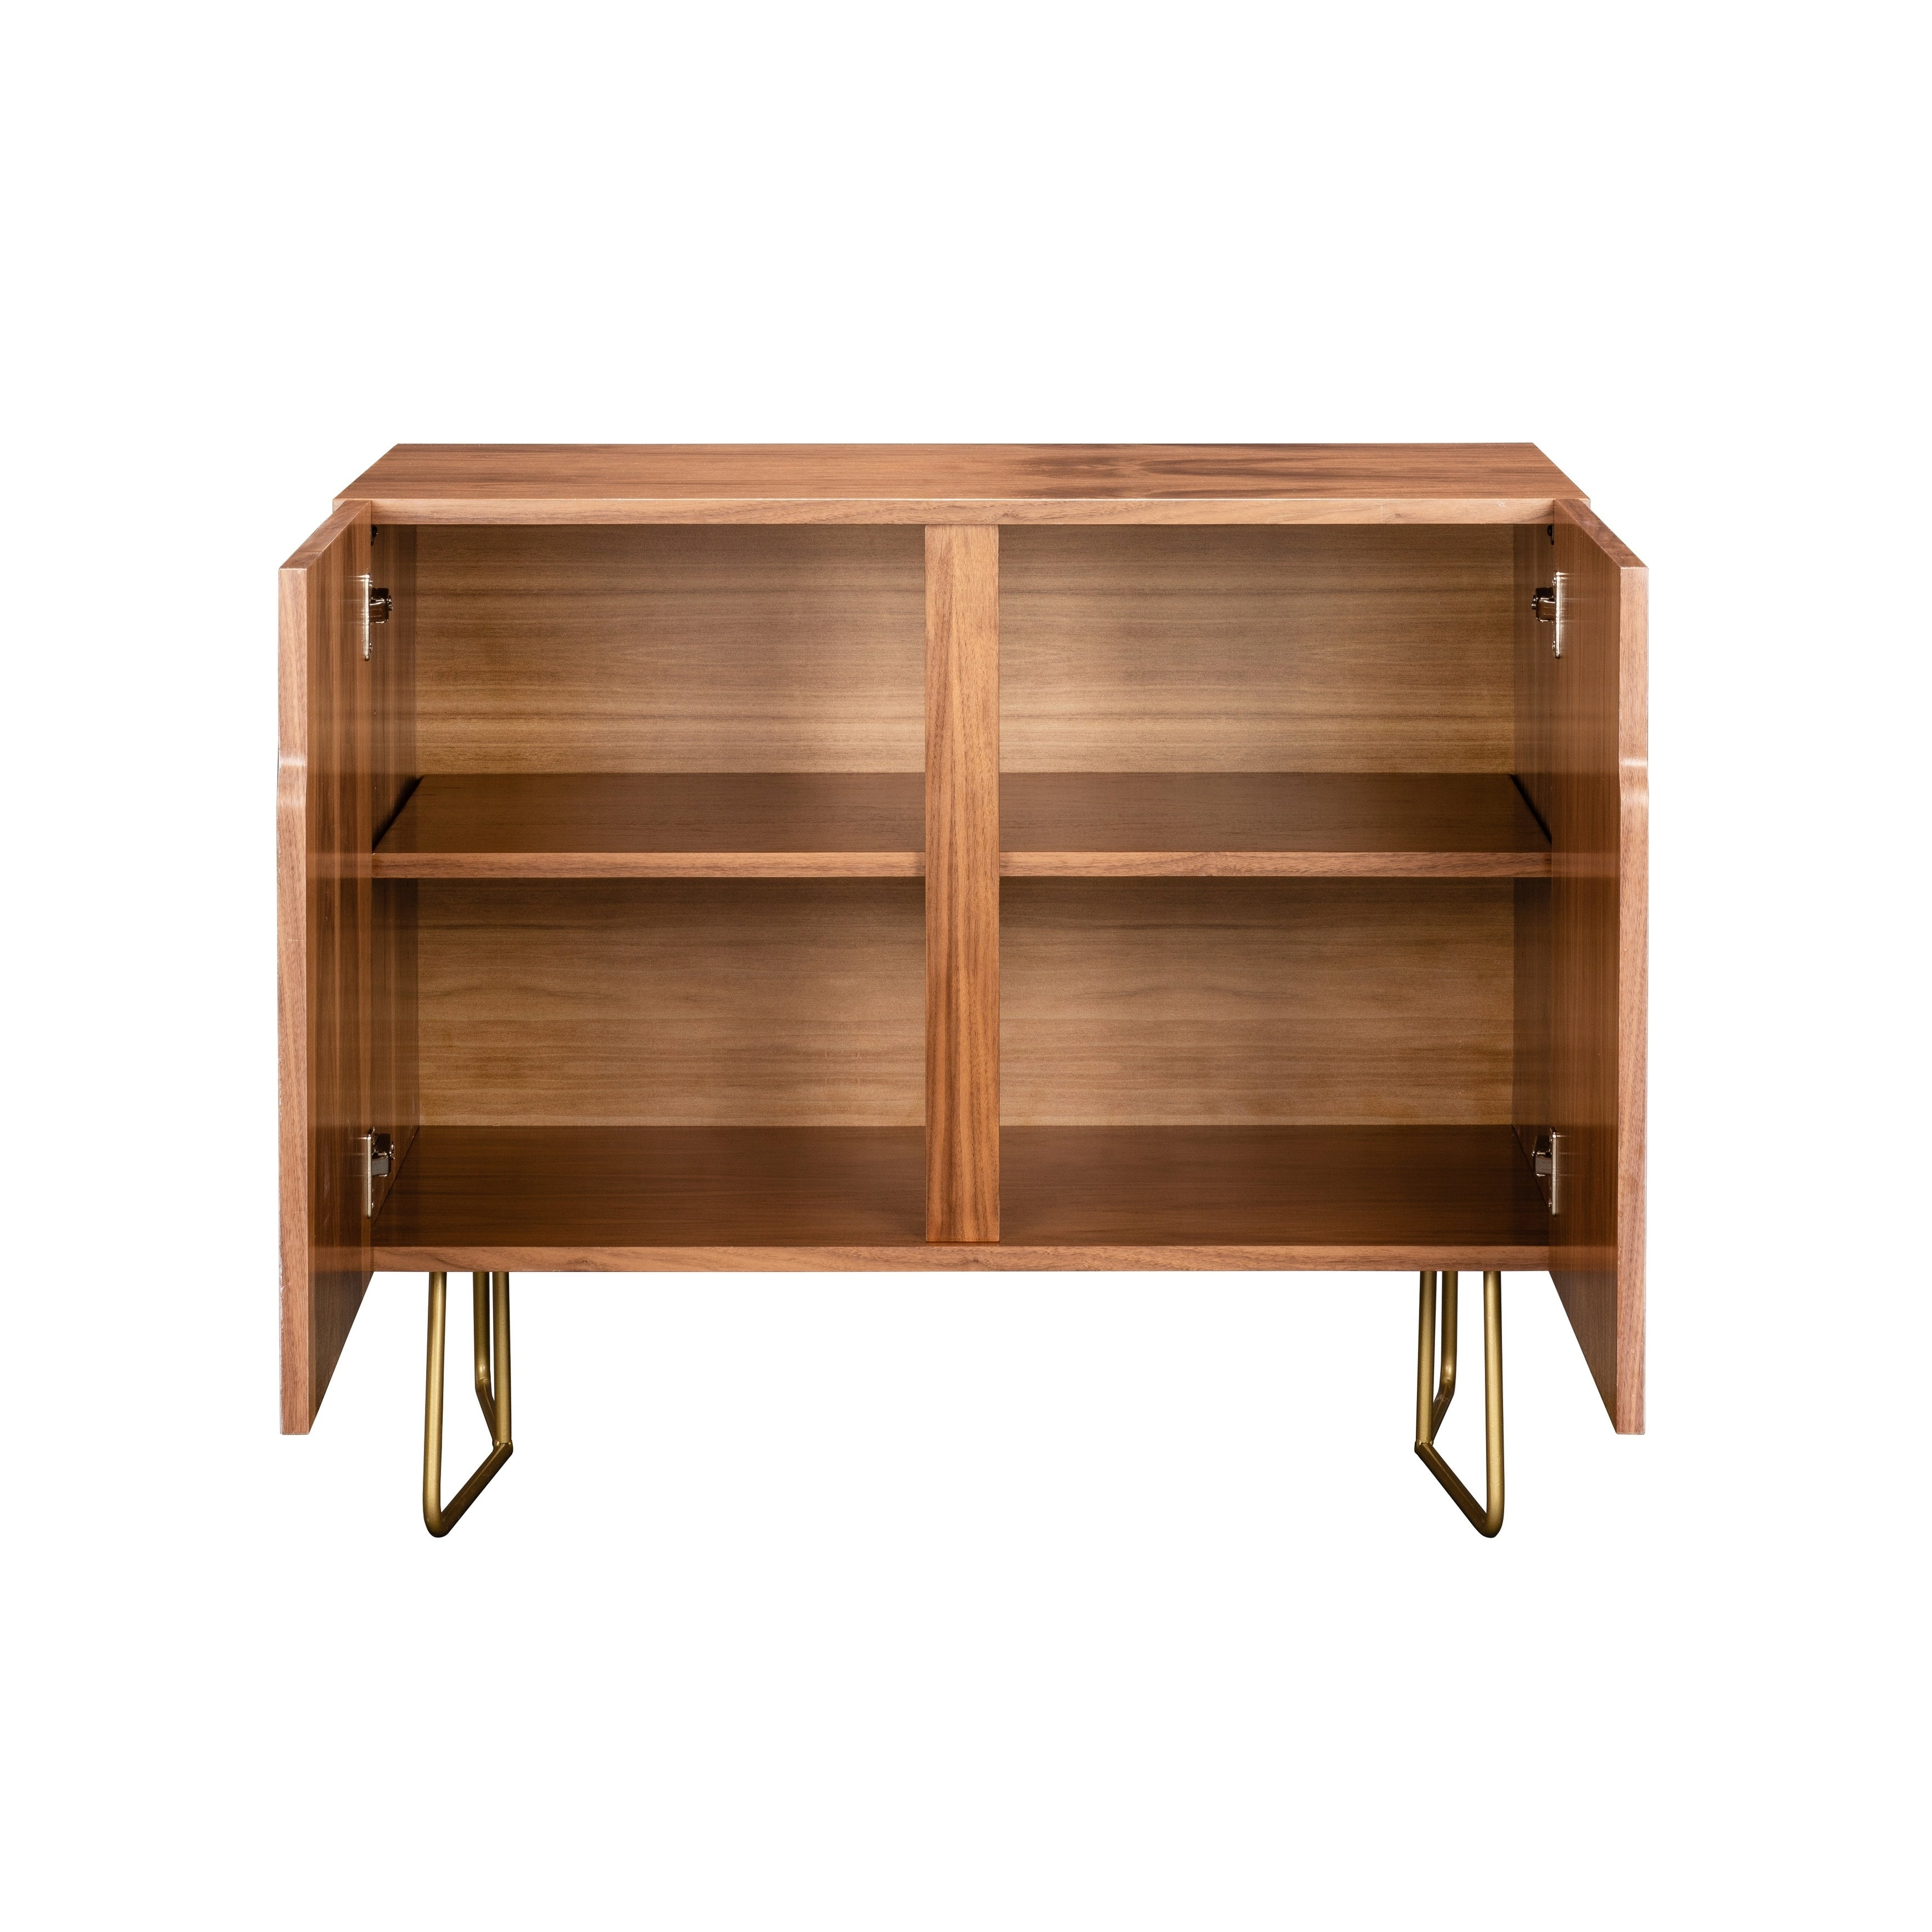 Deny Designs Colorful Leaves Credenza (Birch Or Walnut, 2 Leg Options) For Colorful Leaves Credenzas (View 6 of 20)